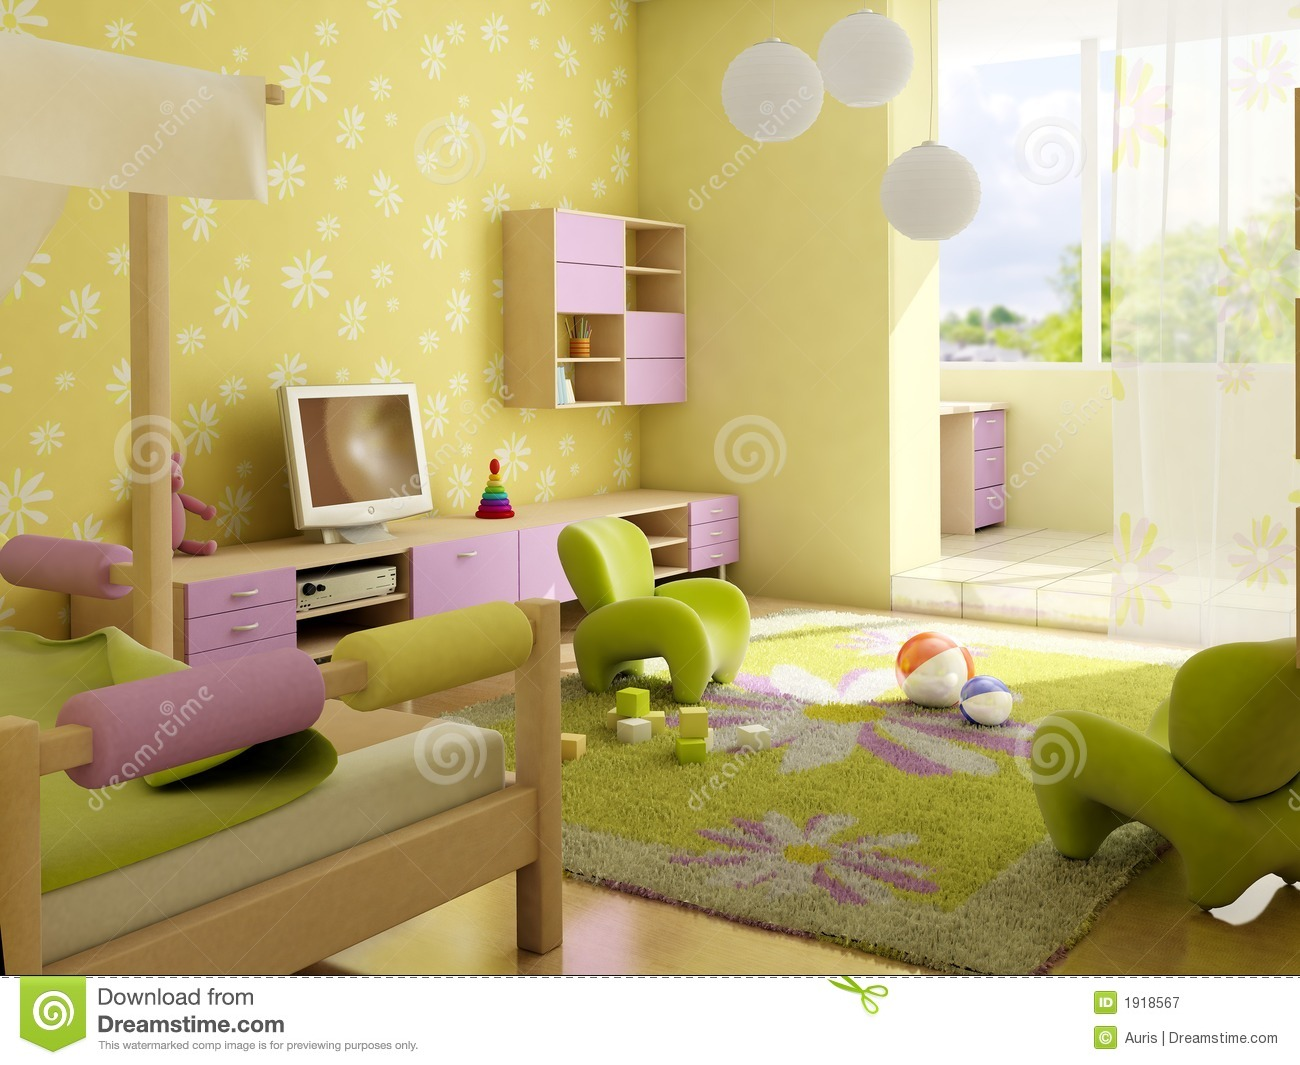 Children 39 S Room Interior Royalty Free Stock Photography Image 1918567